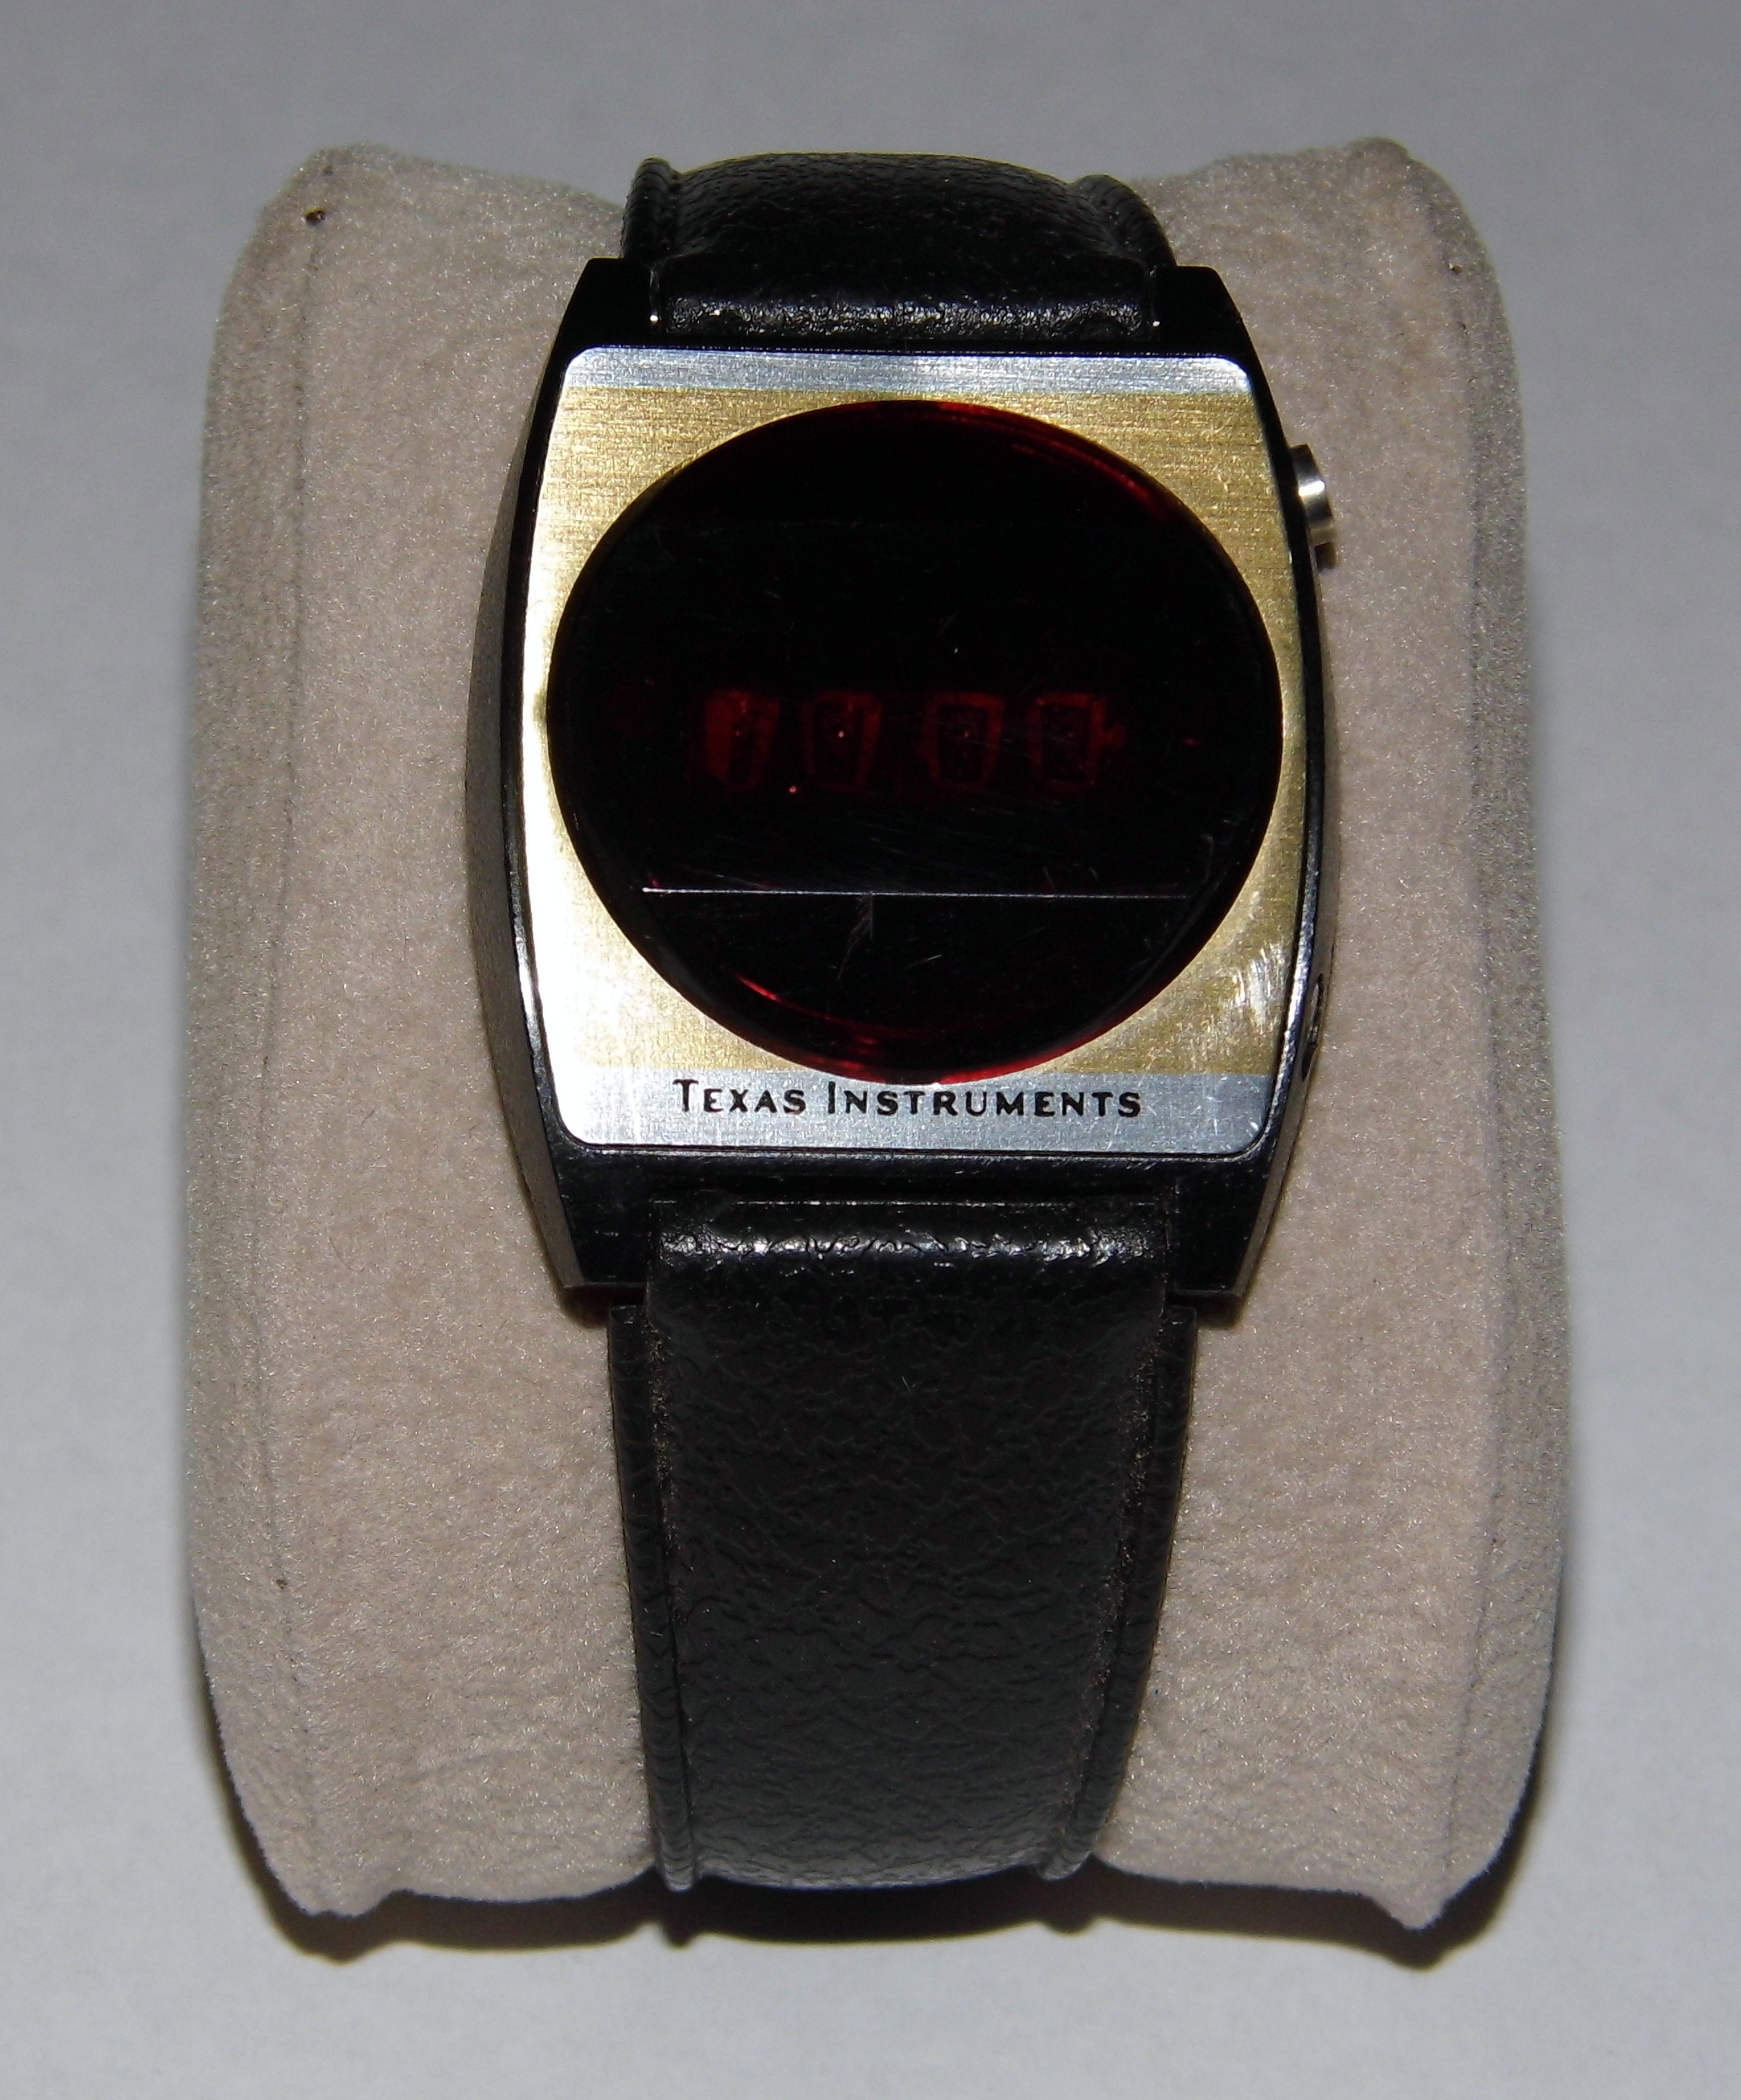 File:Vintage Texas Instruments Series 500 LED Watch ...